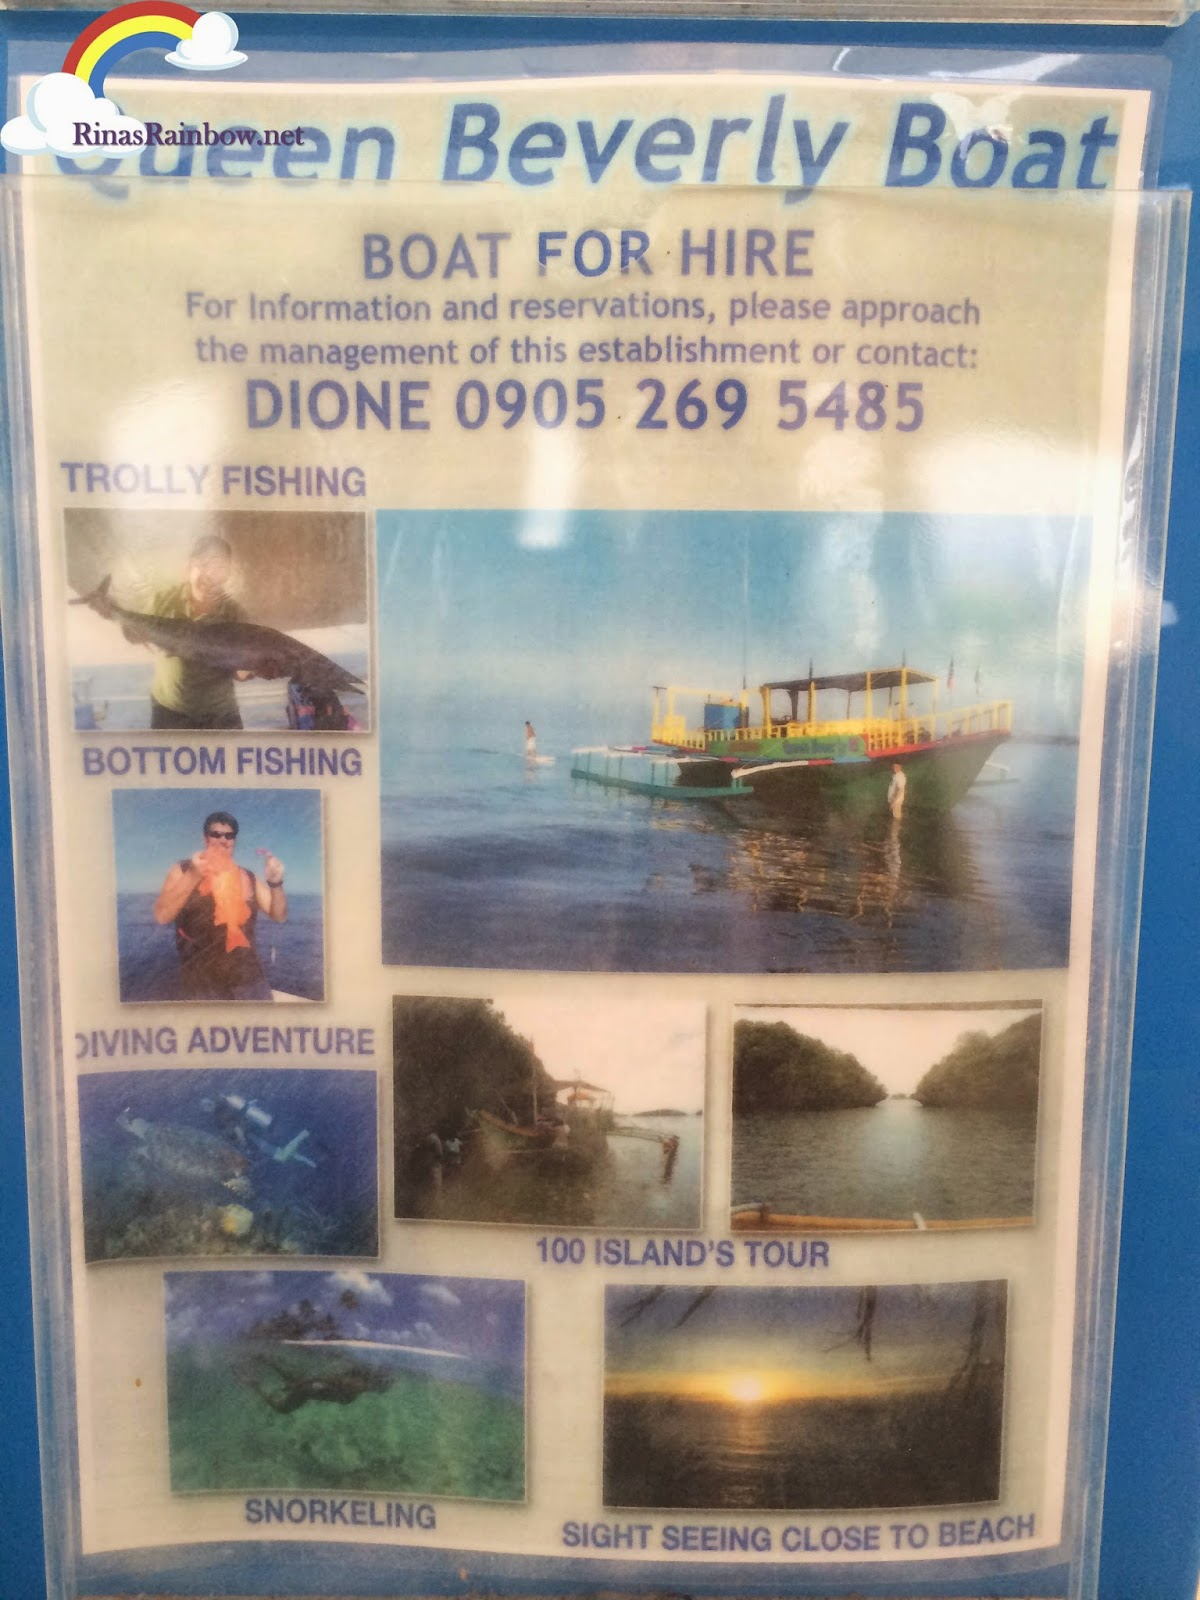 thunderbird boat for hire rates